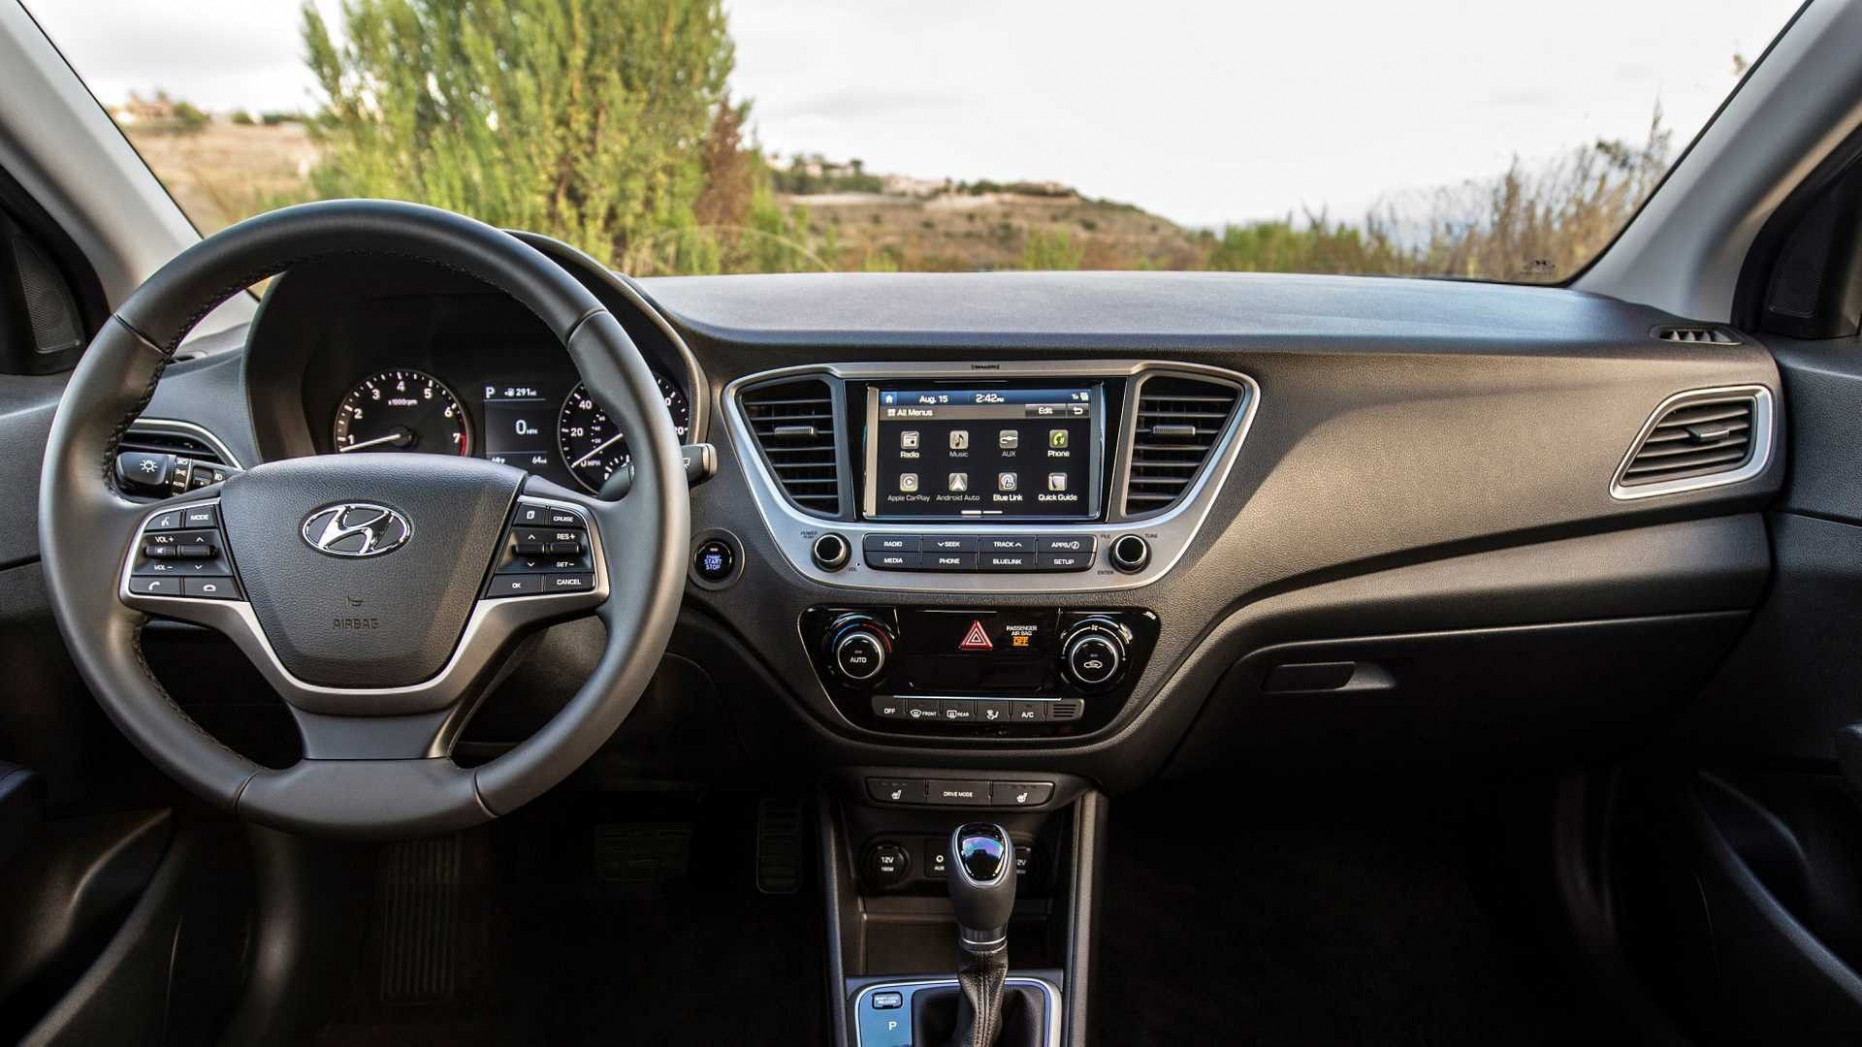 Hyundai Hatchback Accent 10 Review and Specs | Hyundai accent ...